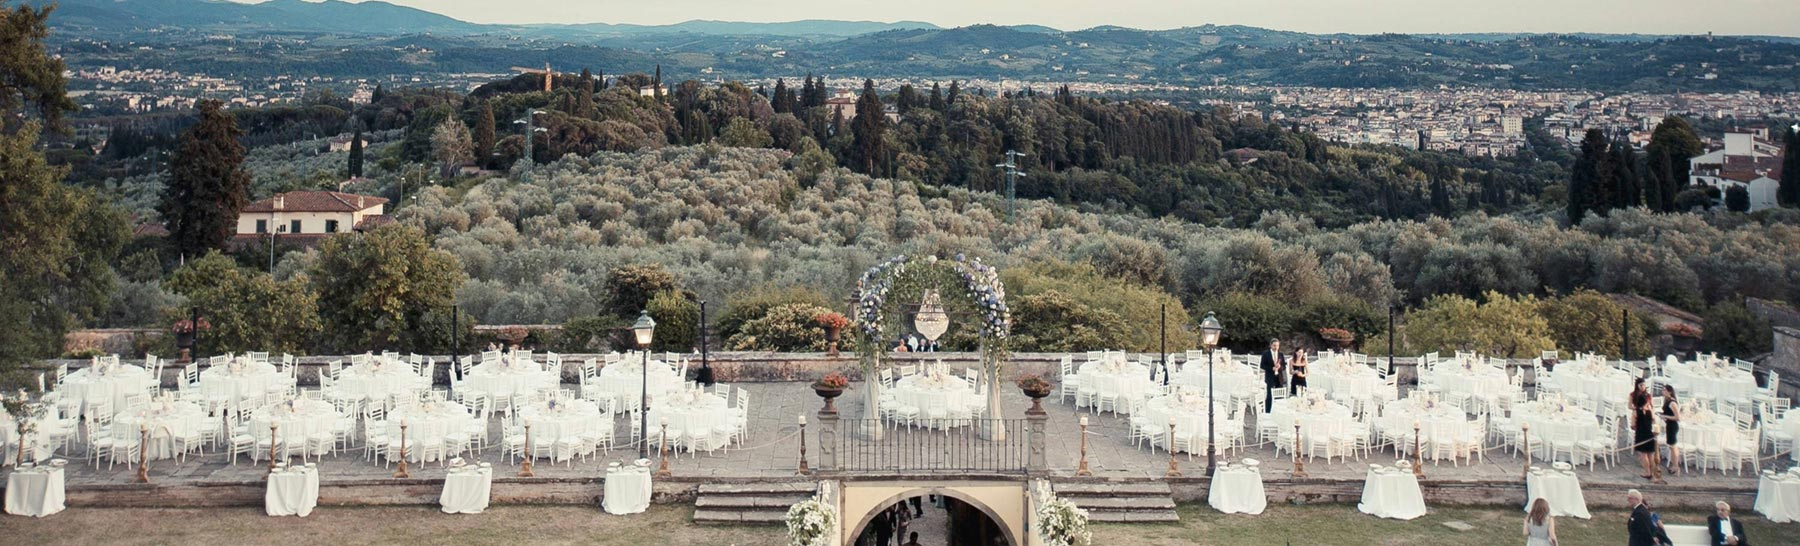 ITALIAN WEDDING PLANNERS FOR YOUR WEDDING